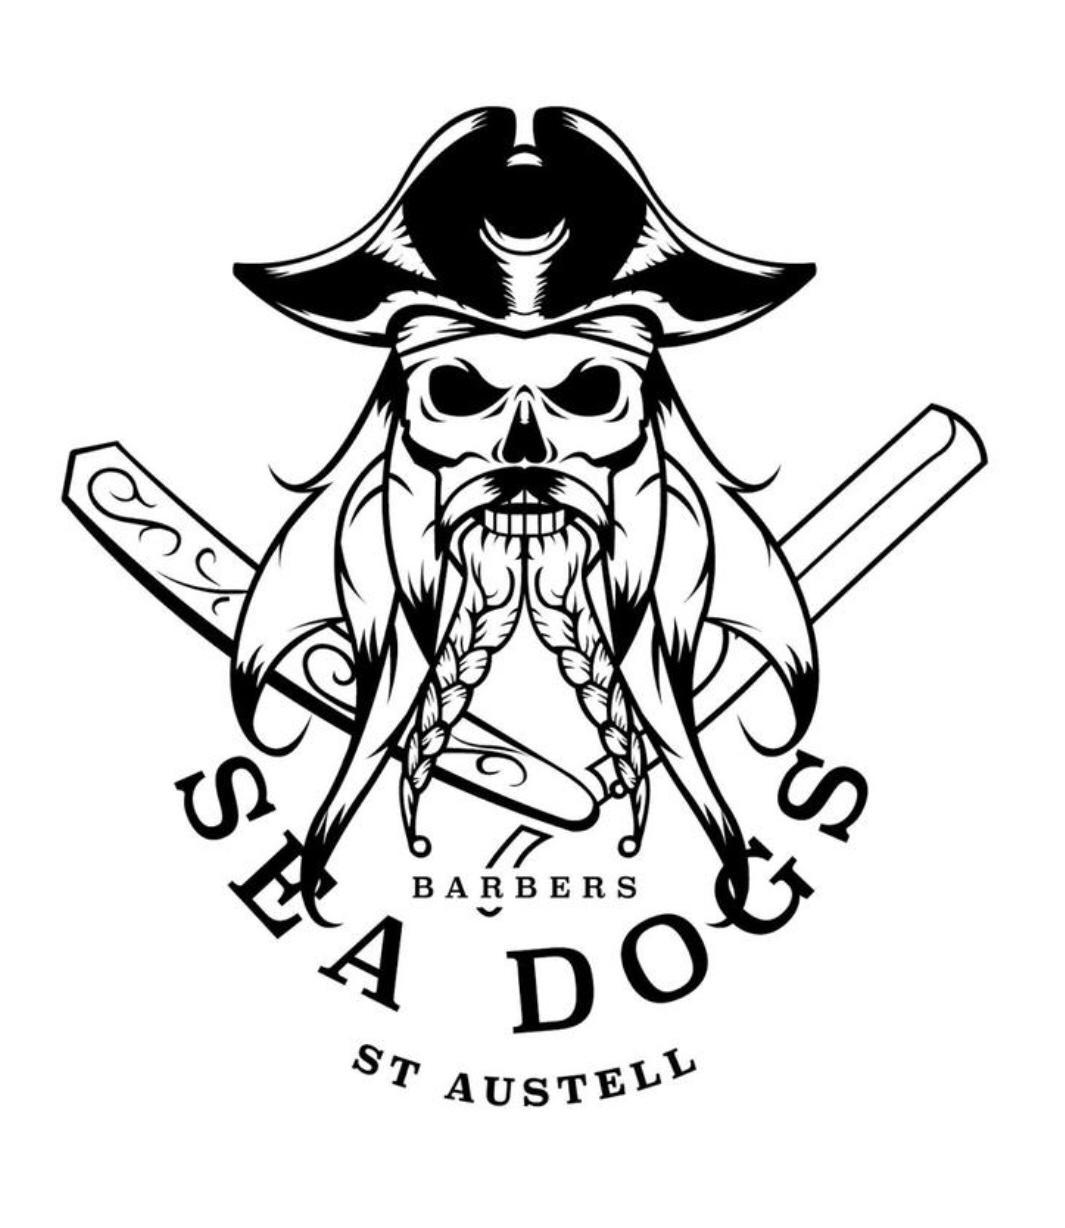 Sea Dogs Barbers